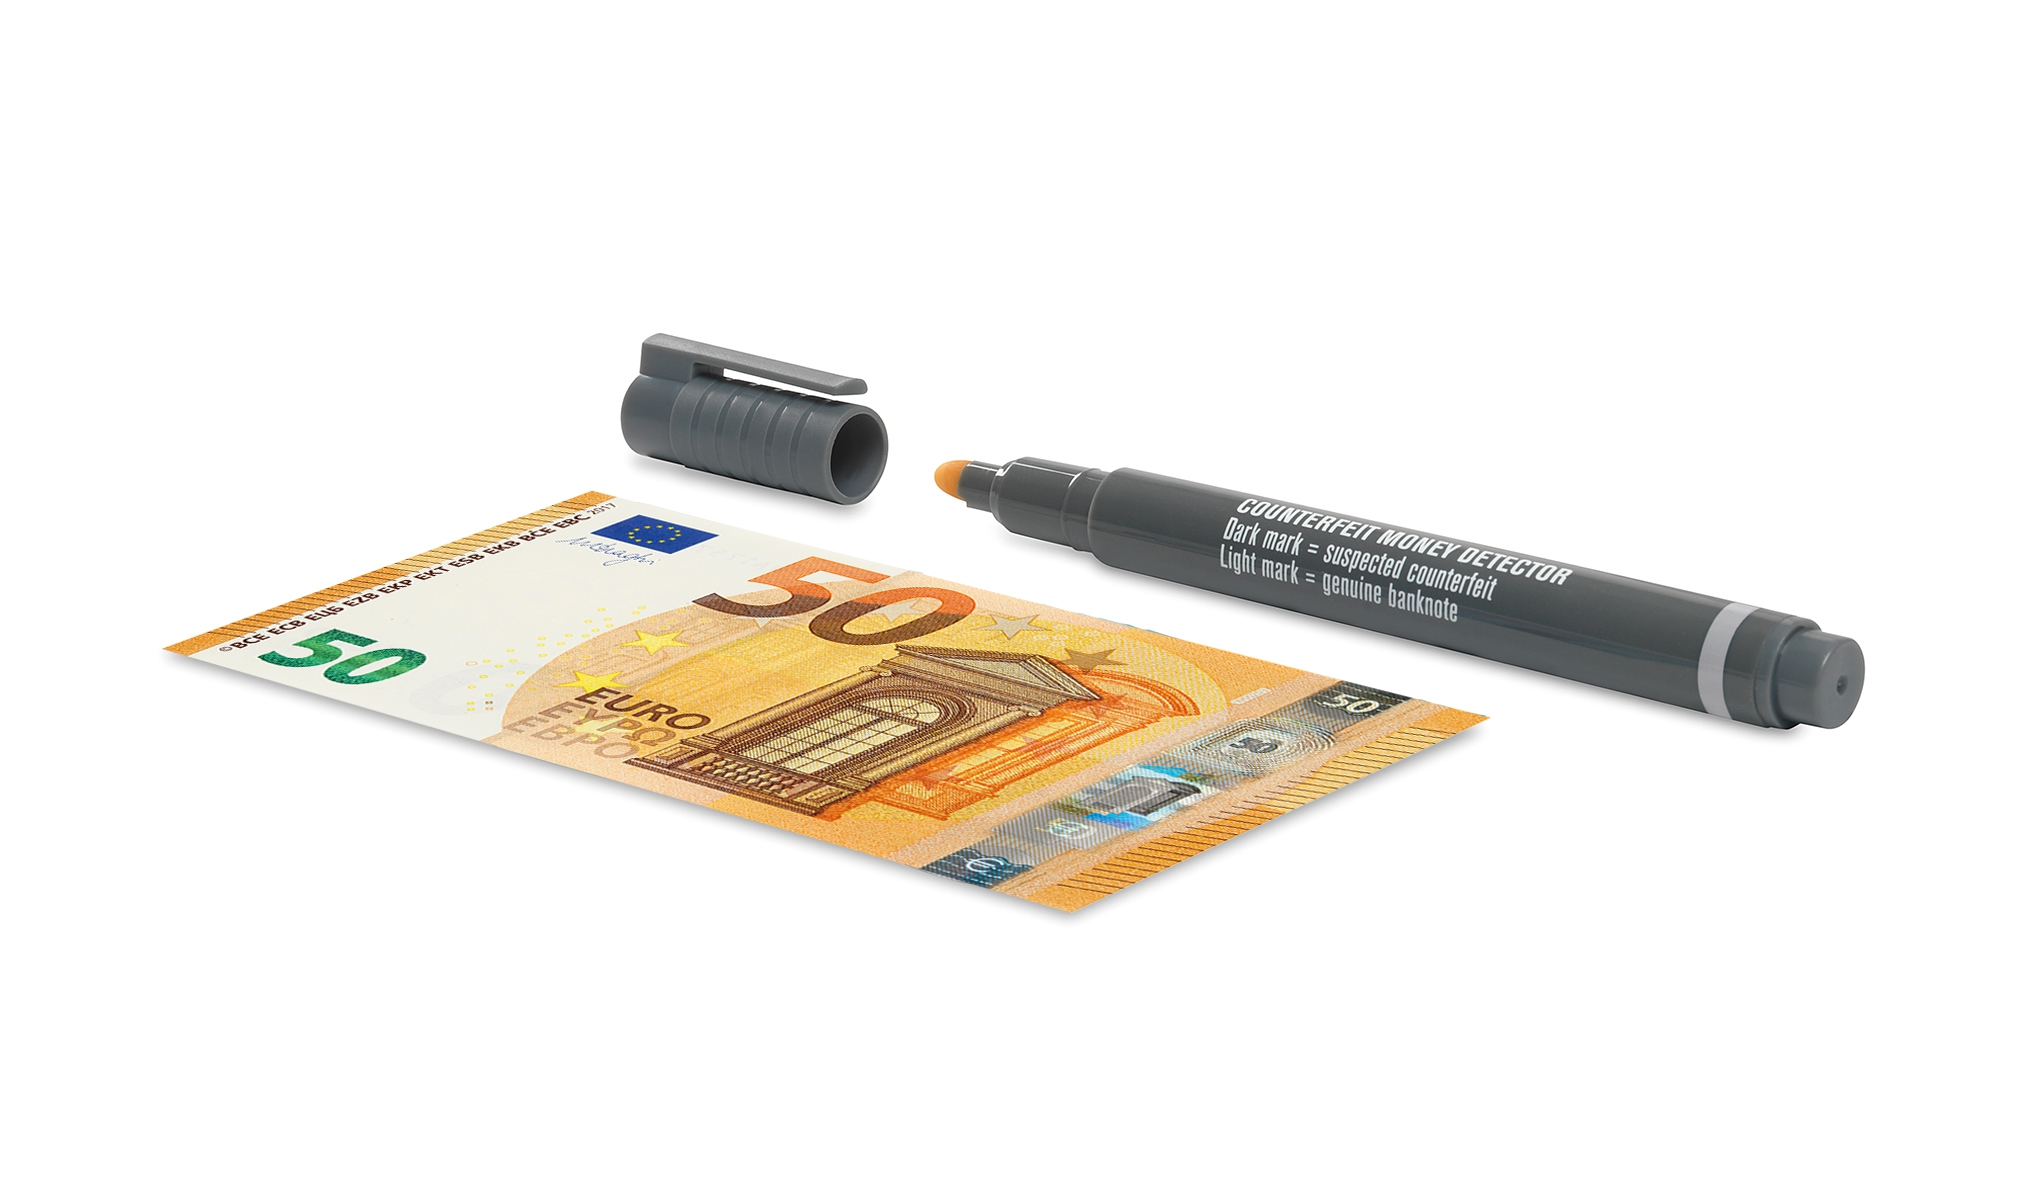 safescan-30-stylo-de-detection-de-faux-billets